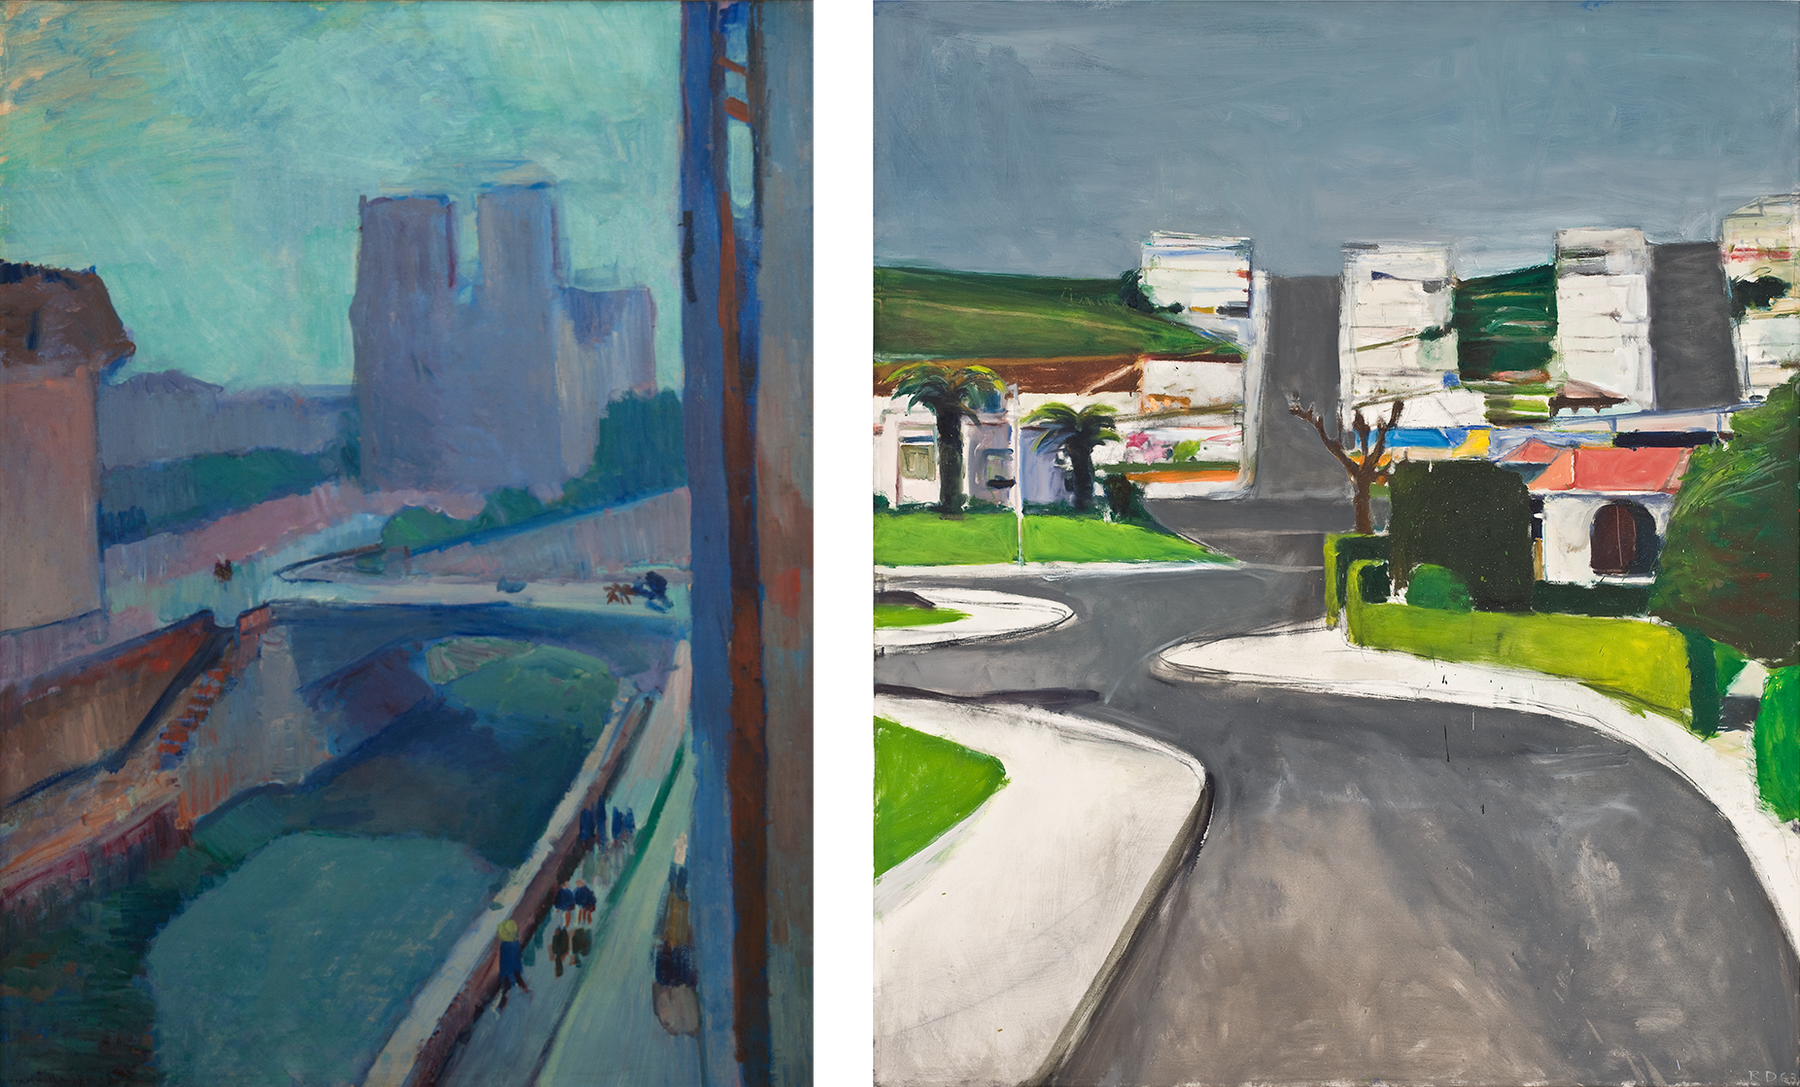 Artwork images, Matisse Late Afternoon and Diebenkorn Ingleside